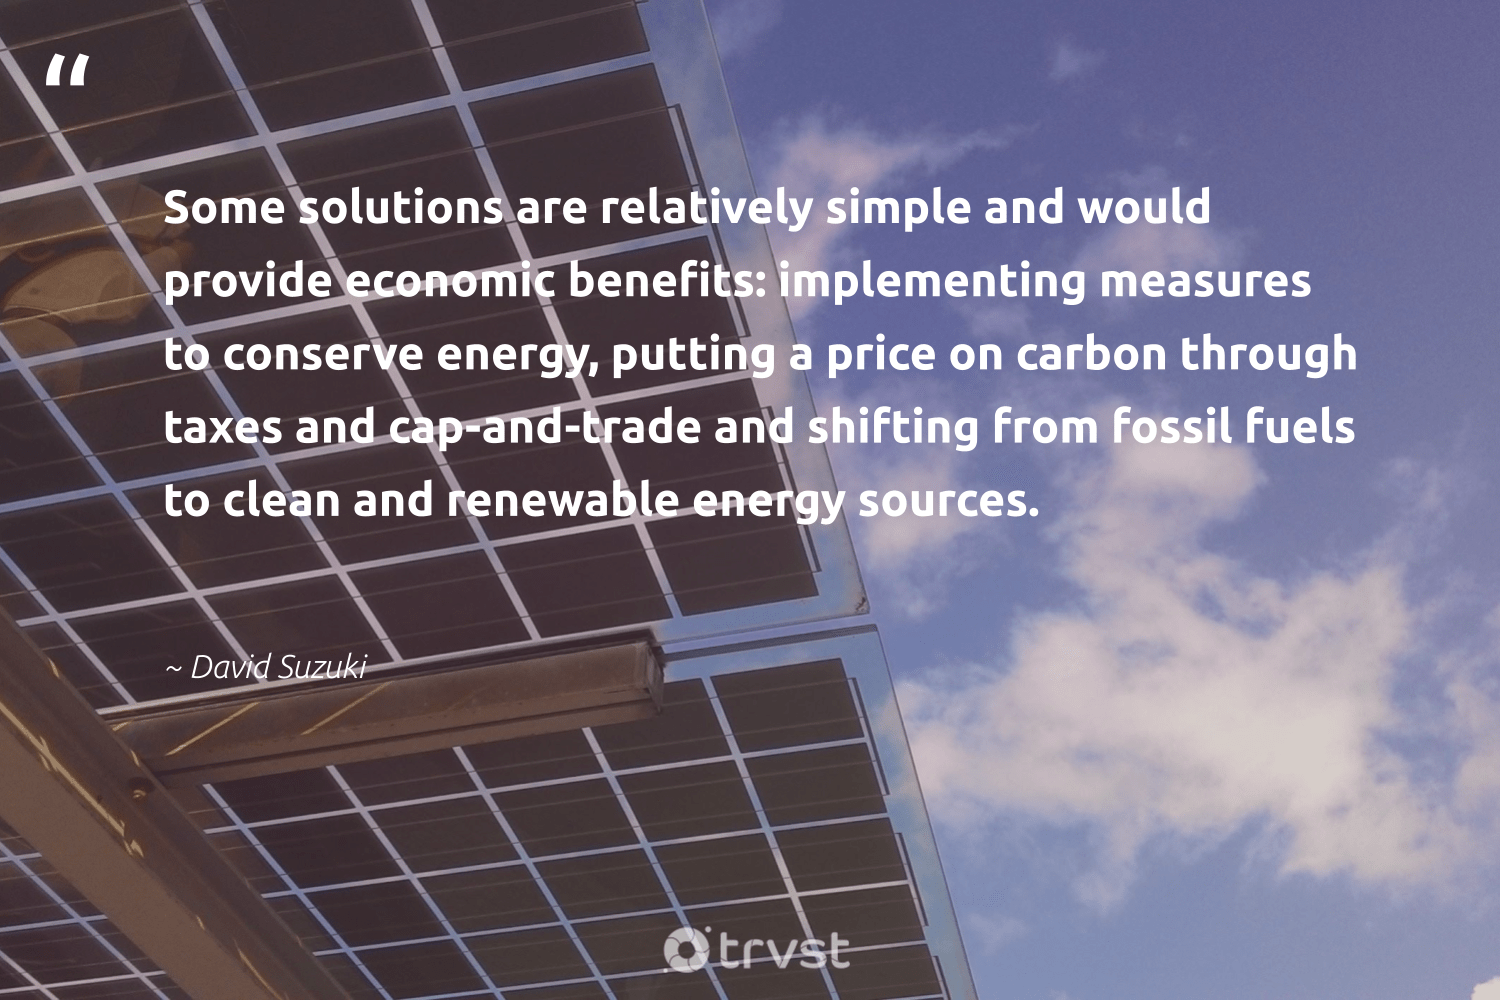 """""""Some solutions are relatively simple and would provide economic benefits: implementing measures to conserve energy, putting a price on carbon through taxes and cap-and-trade and shifting from fossil fuels to clean and renewable energy sources.""""  - David Suzuki #trvst #quotes #renewableenergy #carbon #energy #renewable #fossilfuels #fossil #affordable #greenenergy #zerocarbon #livegreen"""